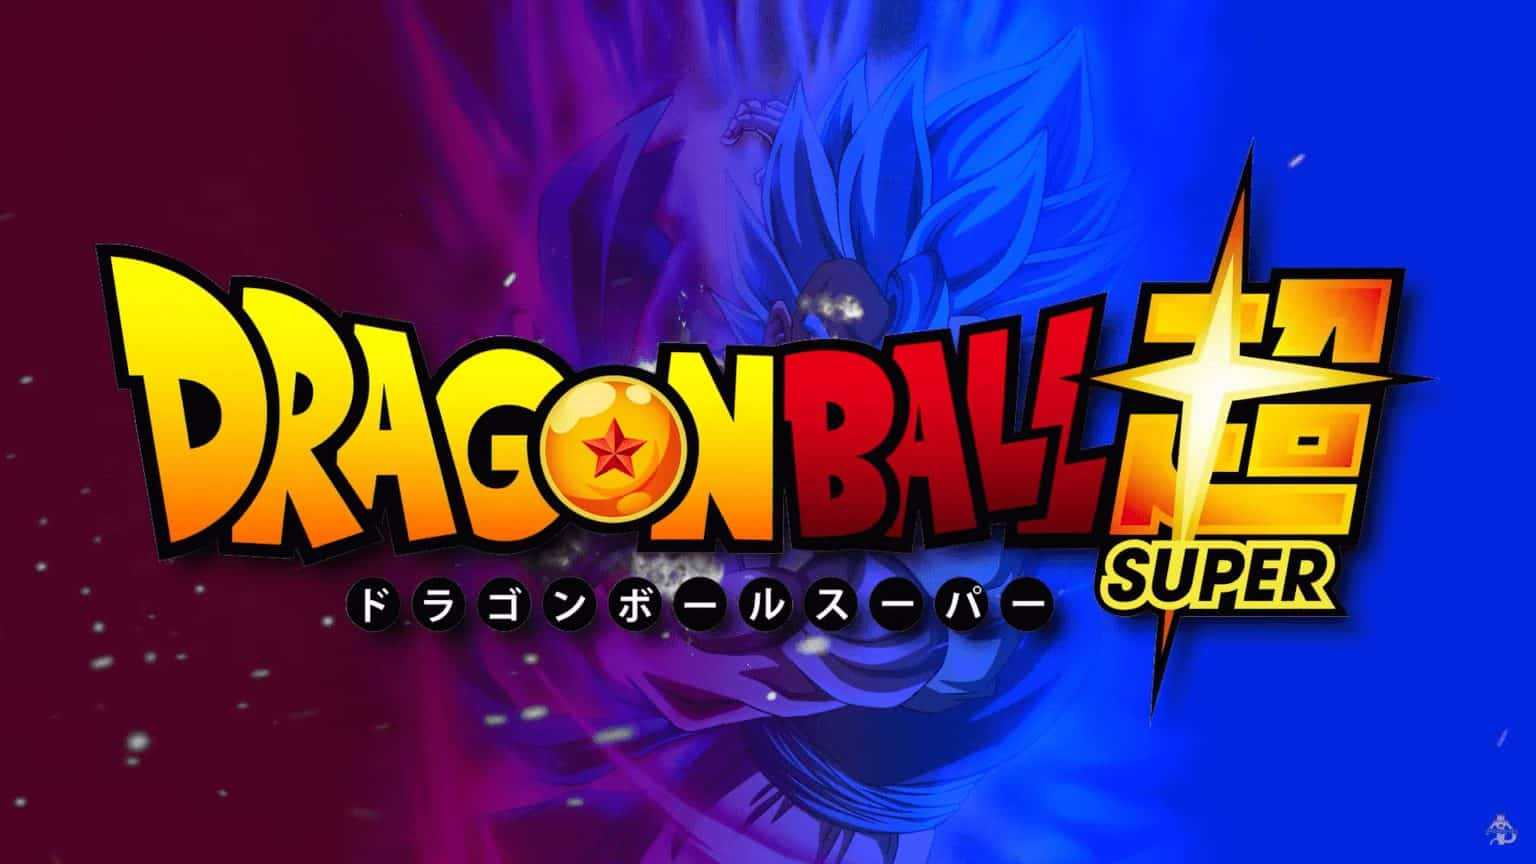 Le retour de dragon ball Super Saison 2 en 2020 ou en 2021 ? 14